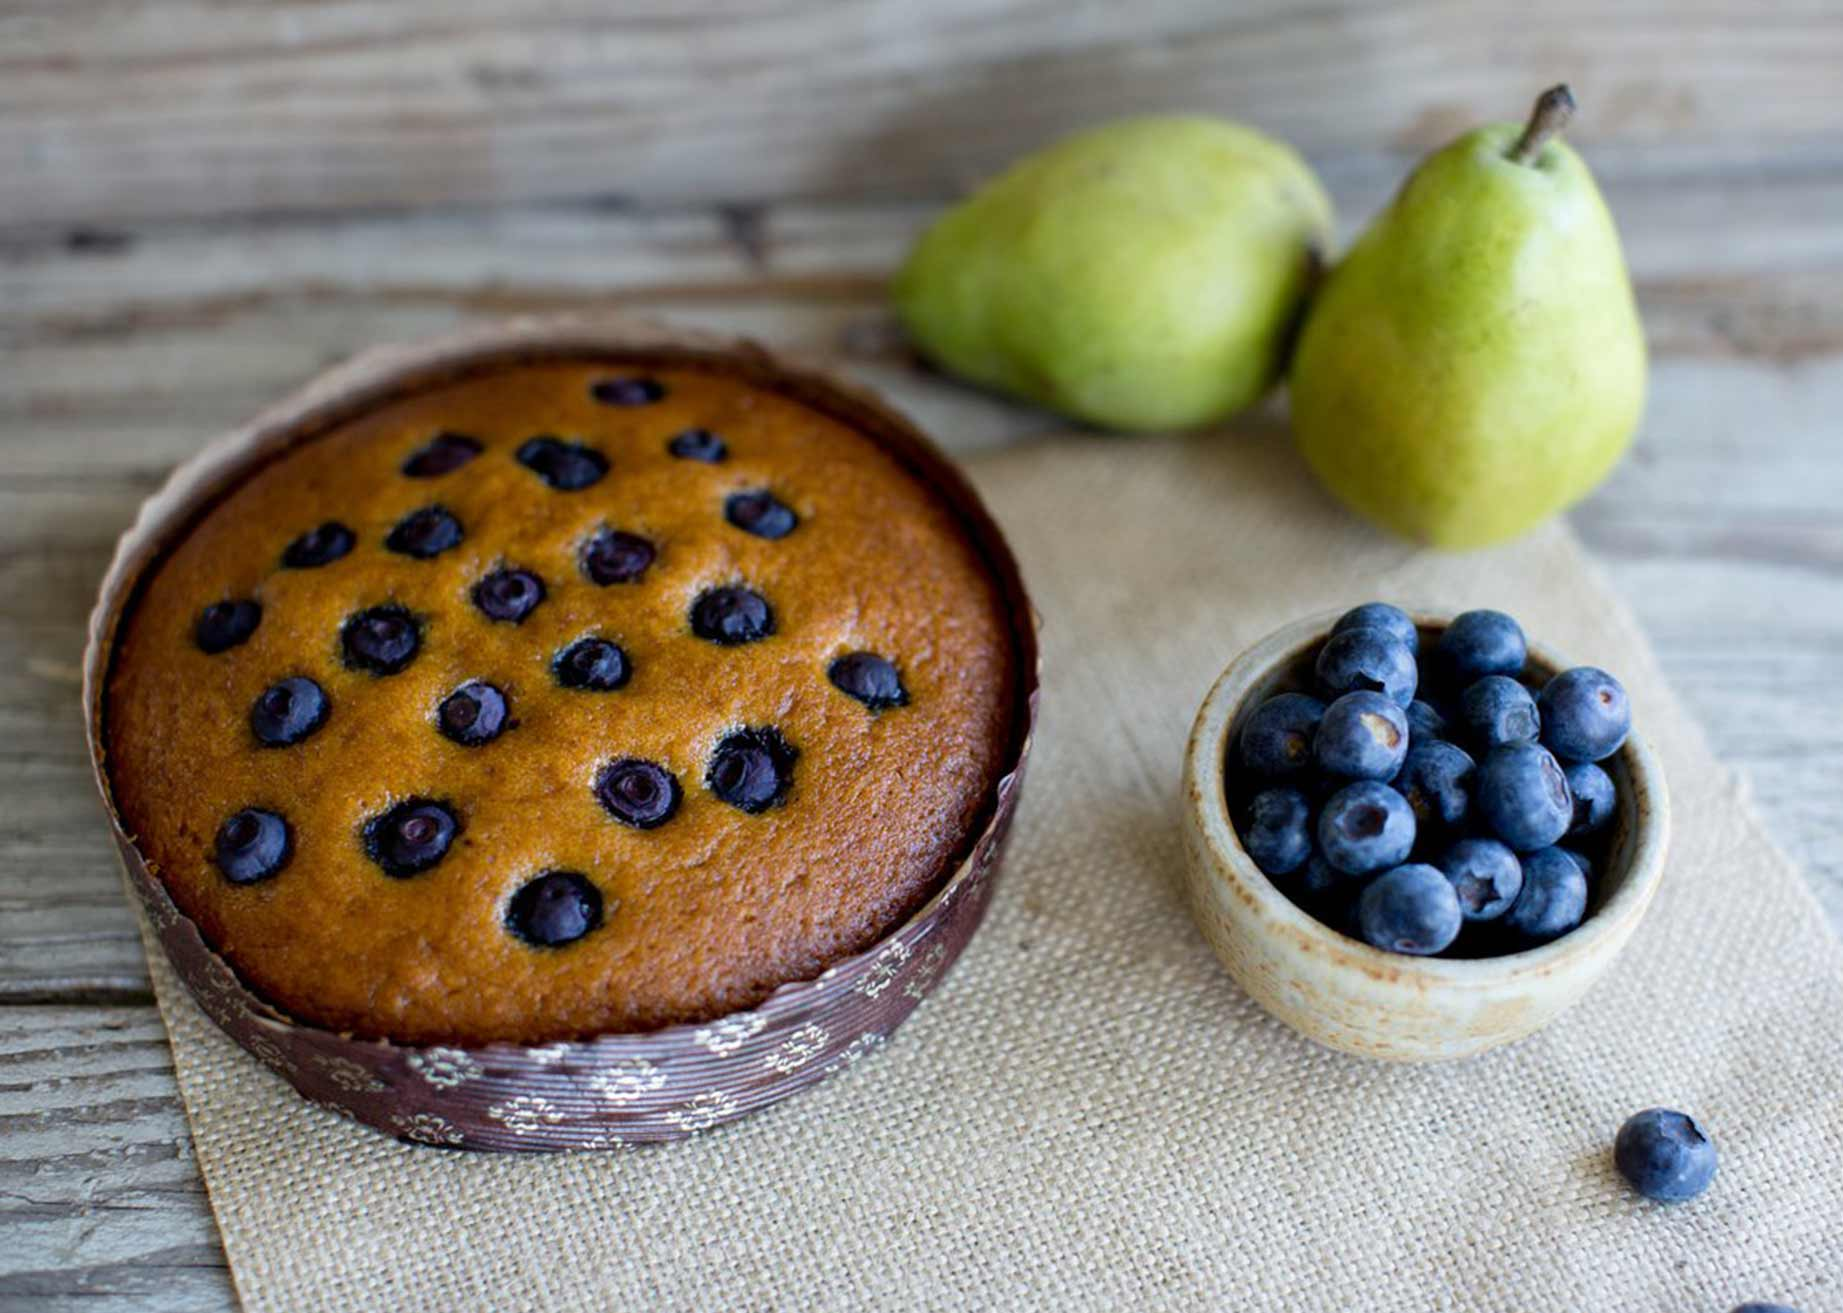 pear and blueberry cake in novacart MBB baking mold